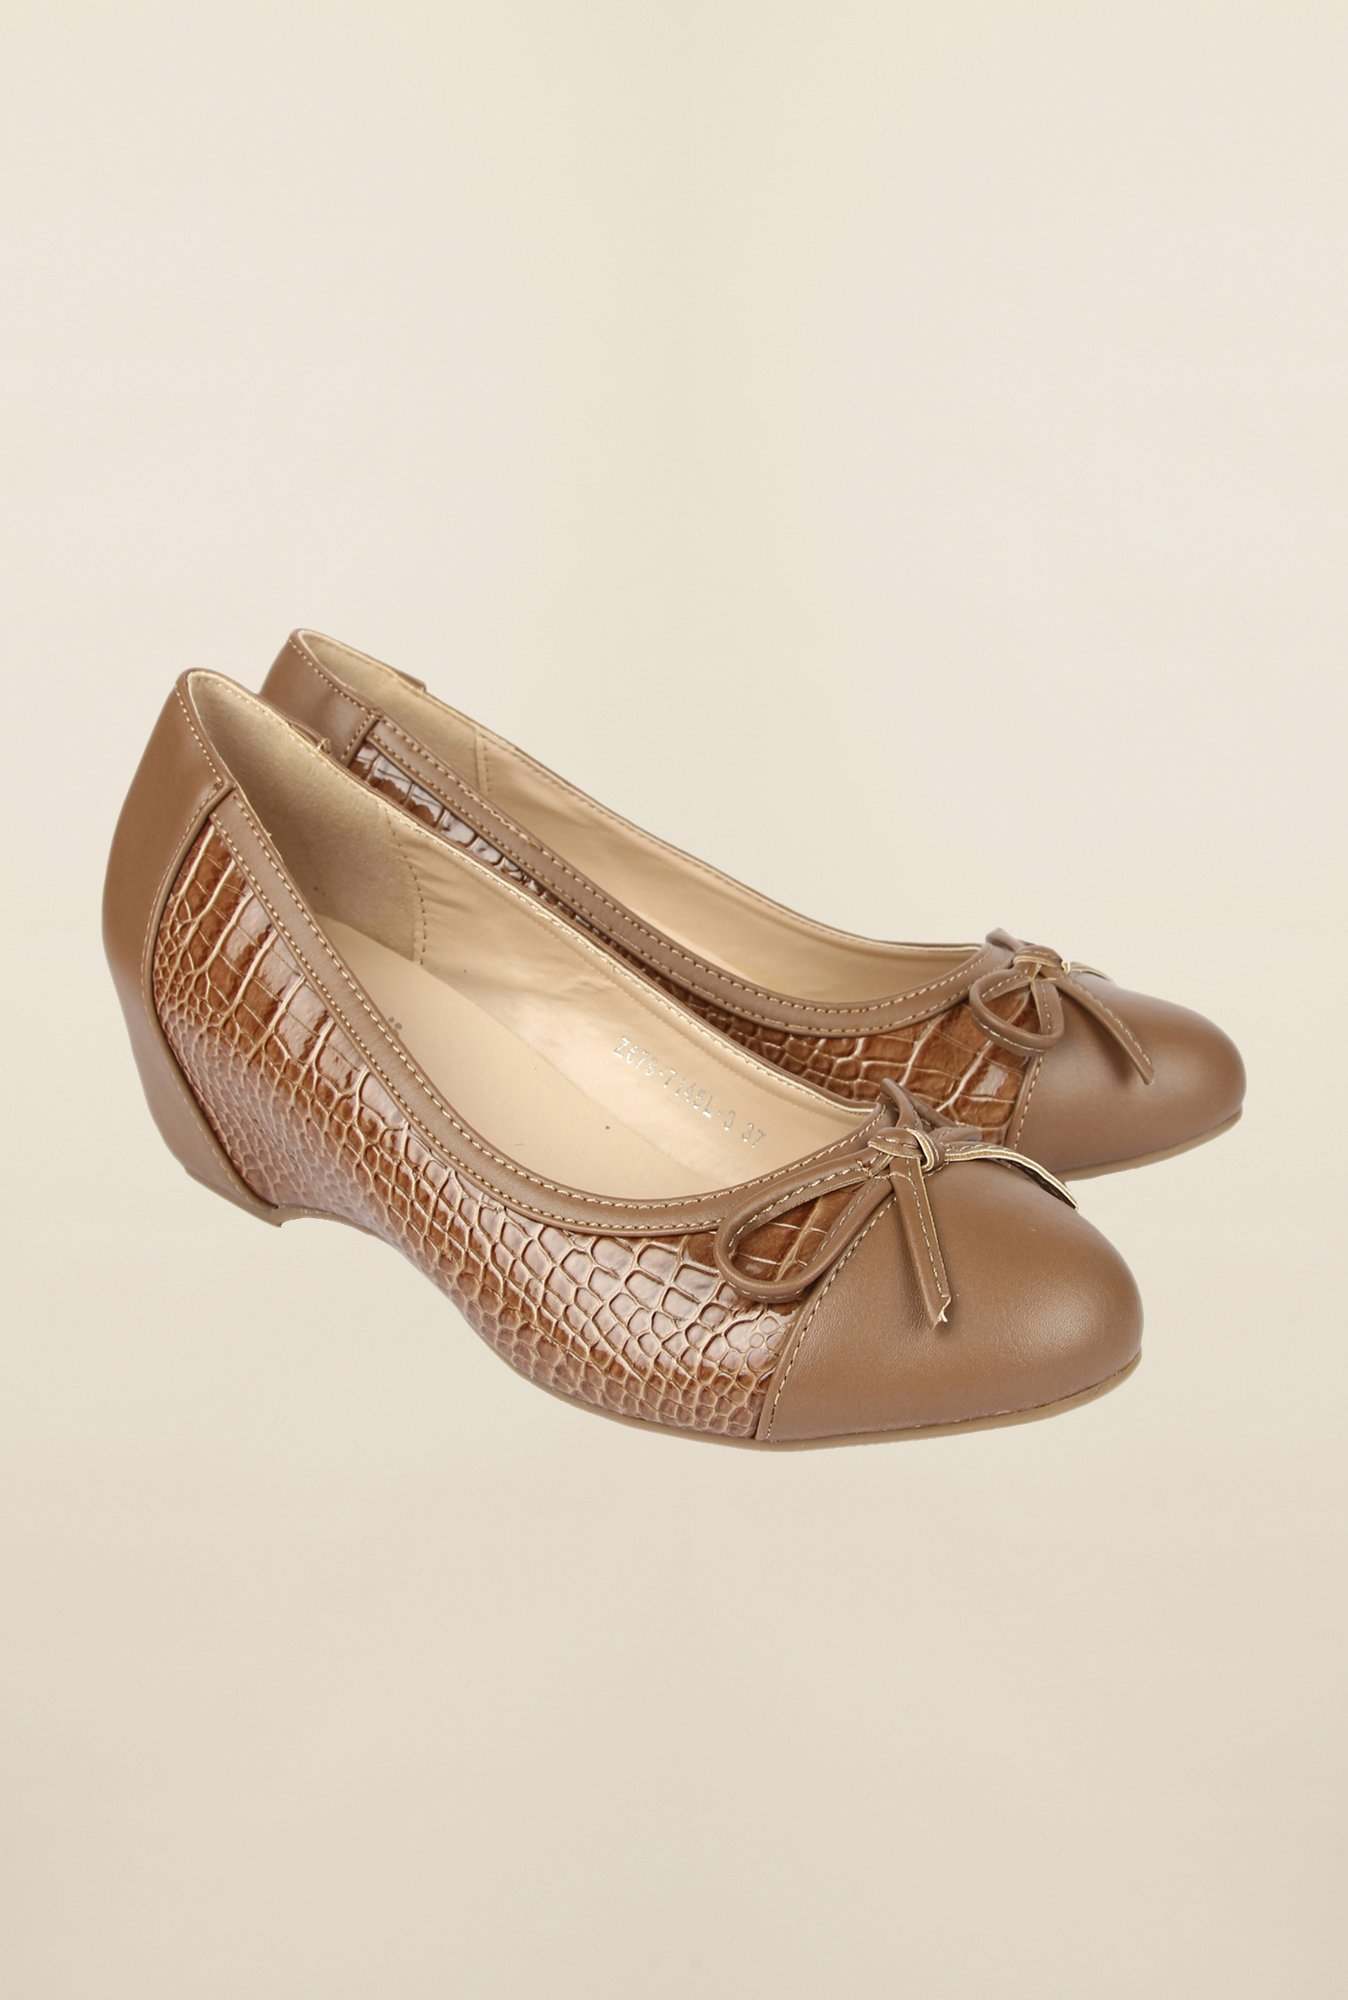 Cobblerz Beige Wedge Shoes